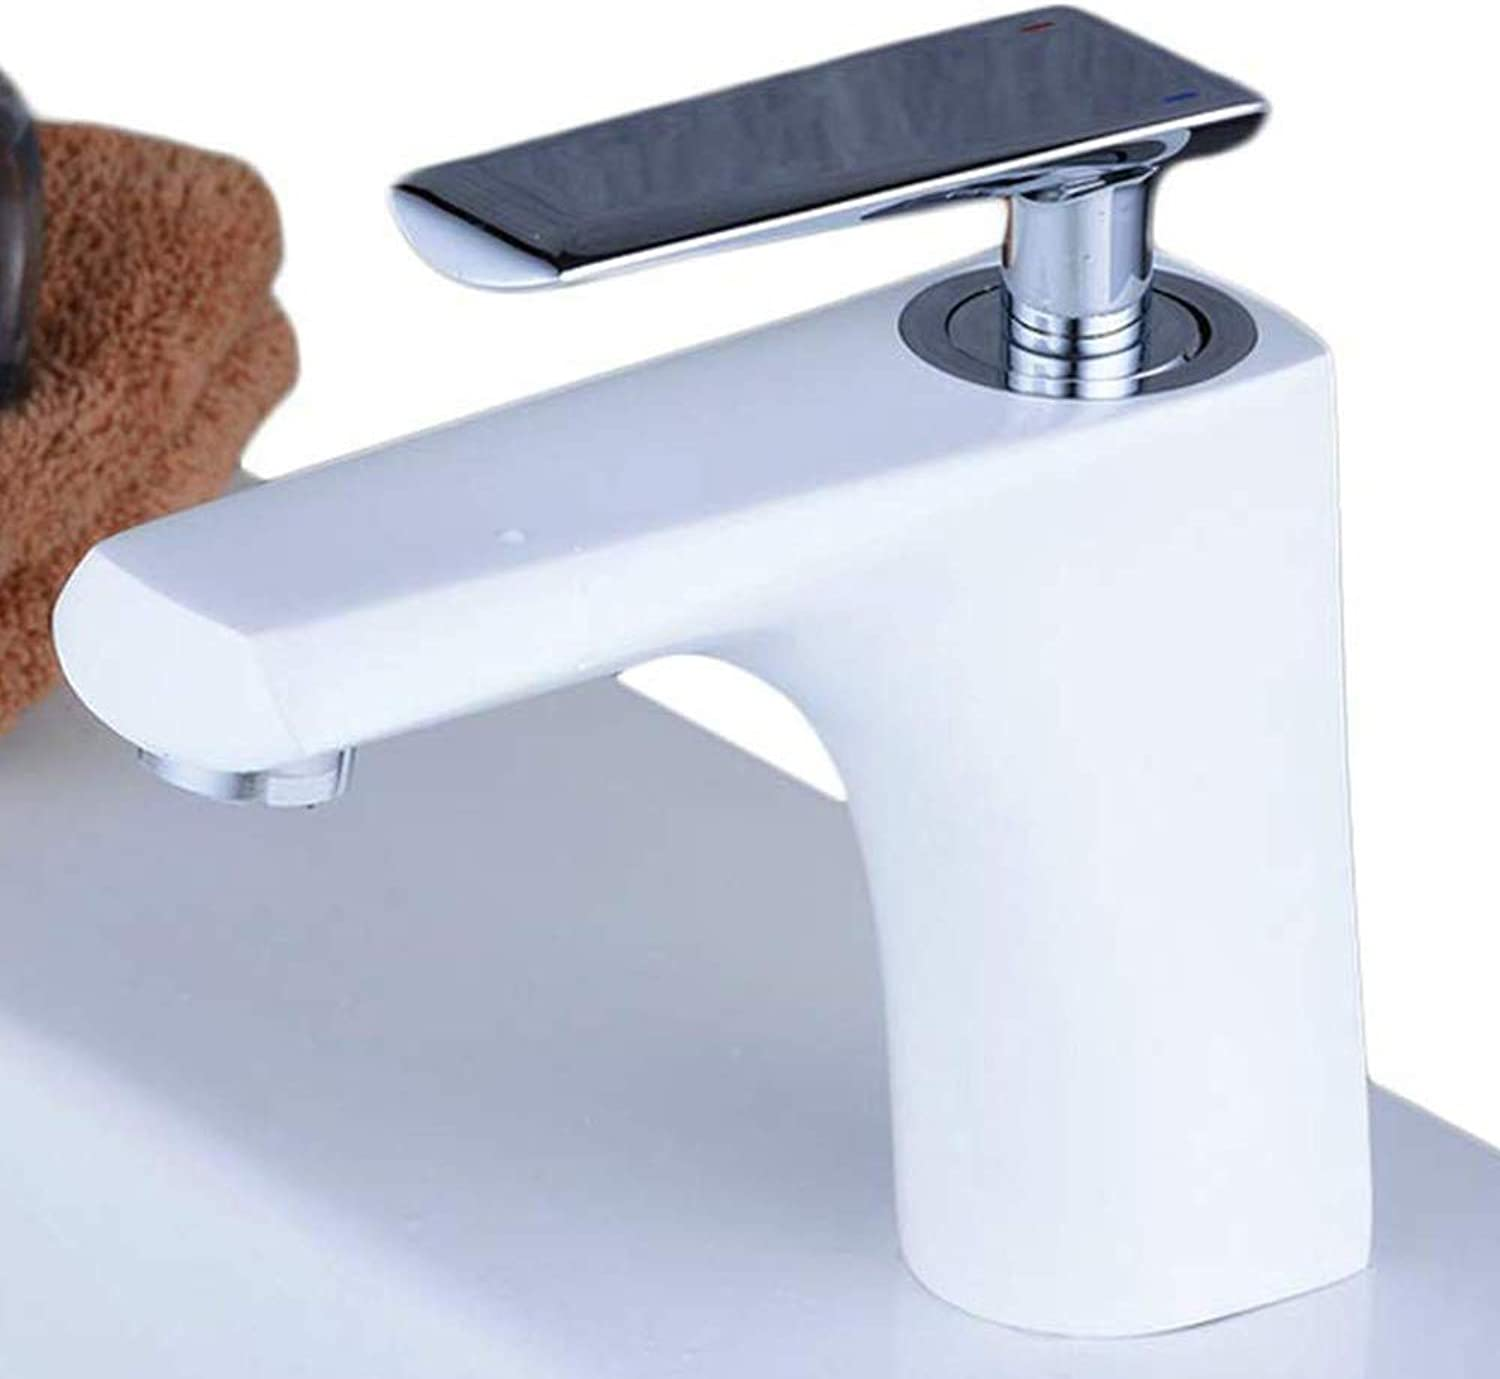 Water Tap Basin Mixer Tap Bathroom Sink Taps Lever Wash Basin Faucet White